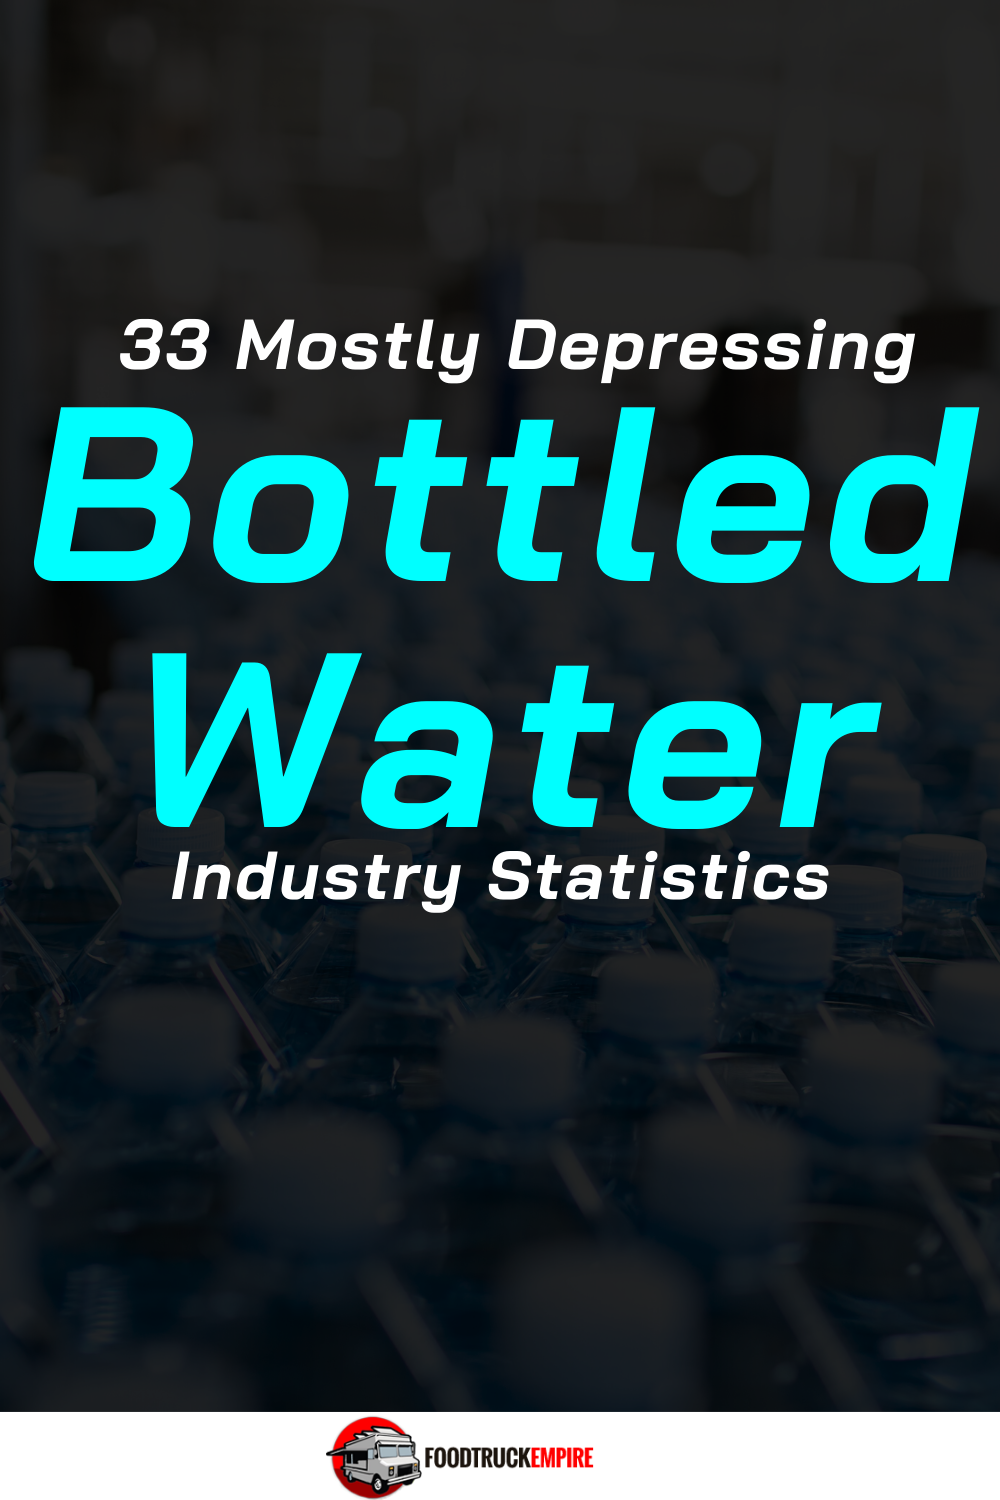 33 Mostly Depressing Bottled Water Industry Statistics